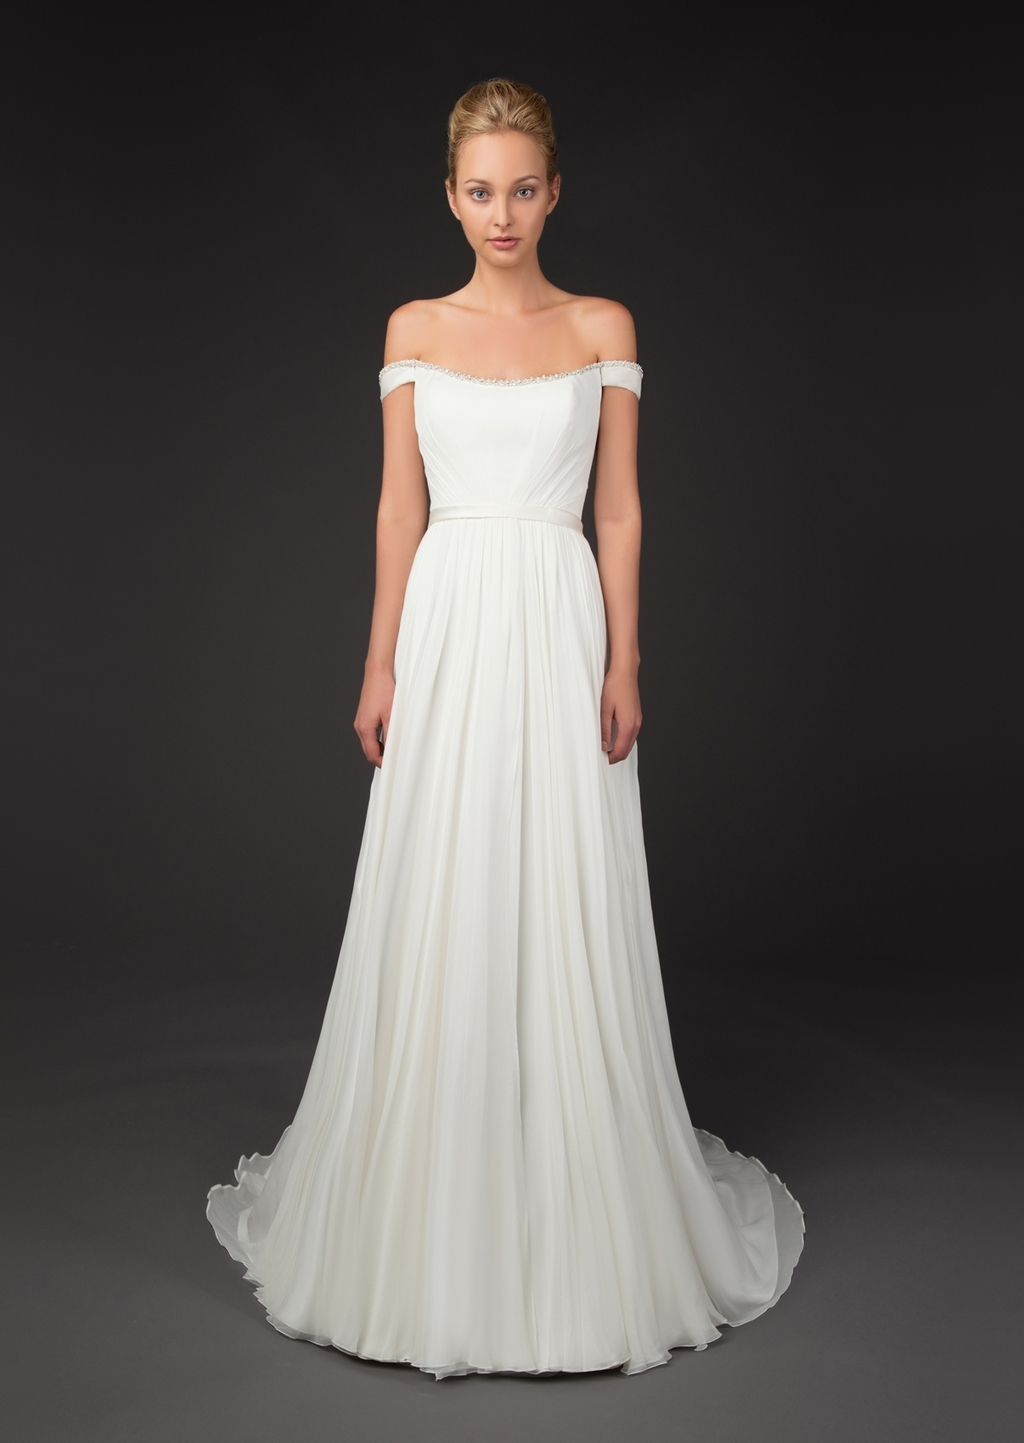 Grecian Inspired Gown with Swarovski f the Shoulder